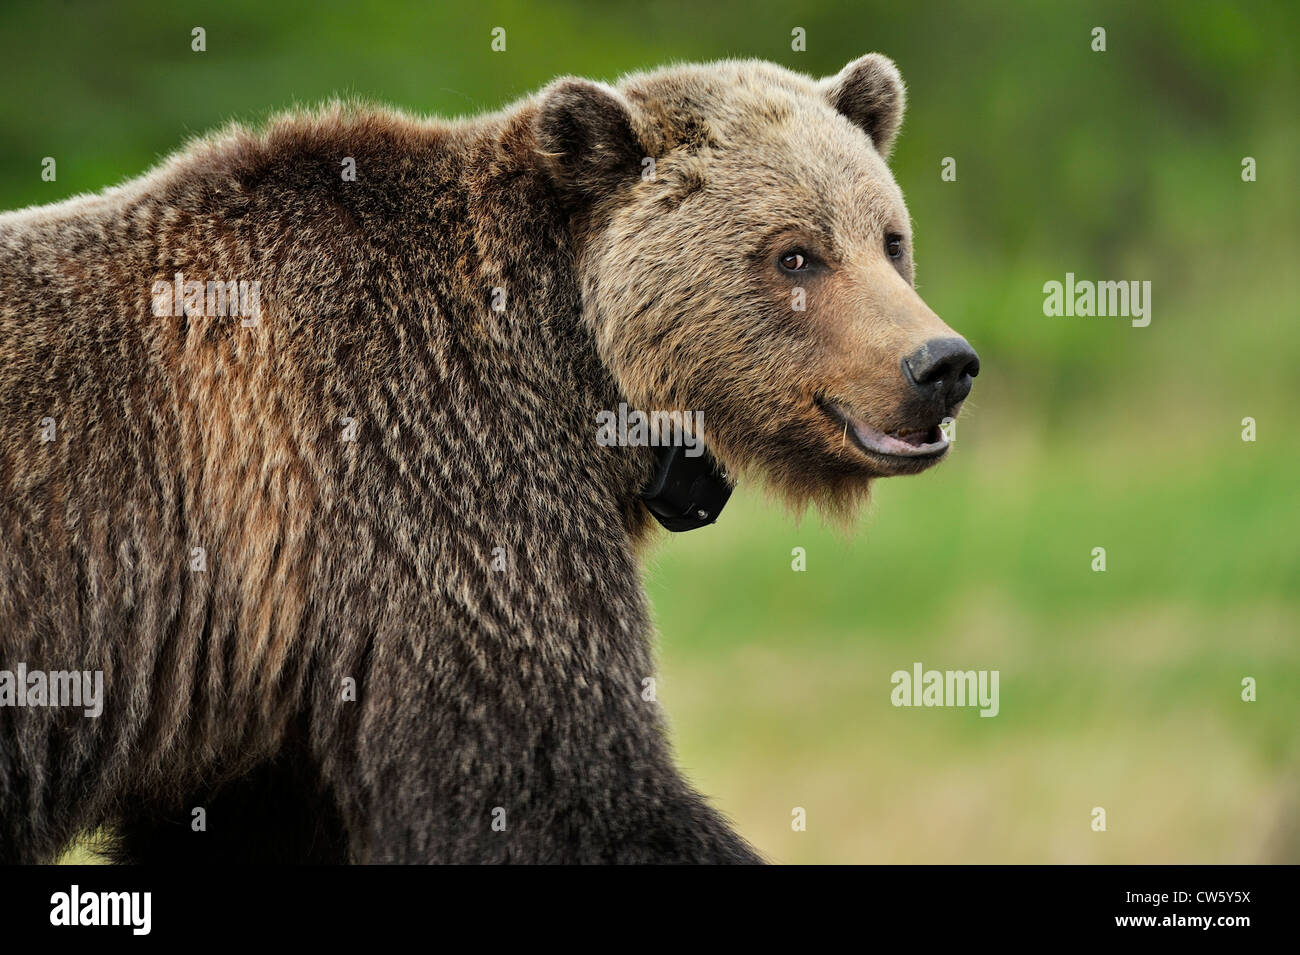 A close up side view of a female grizzly bear Stock Photo